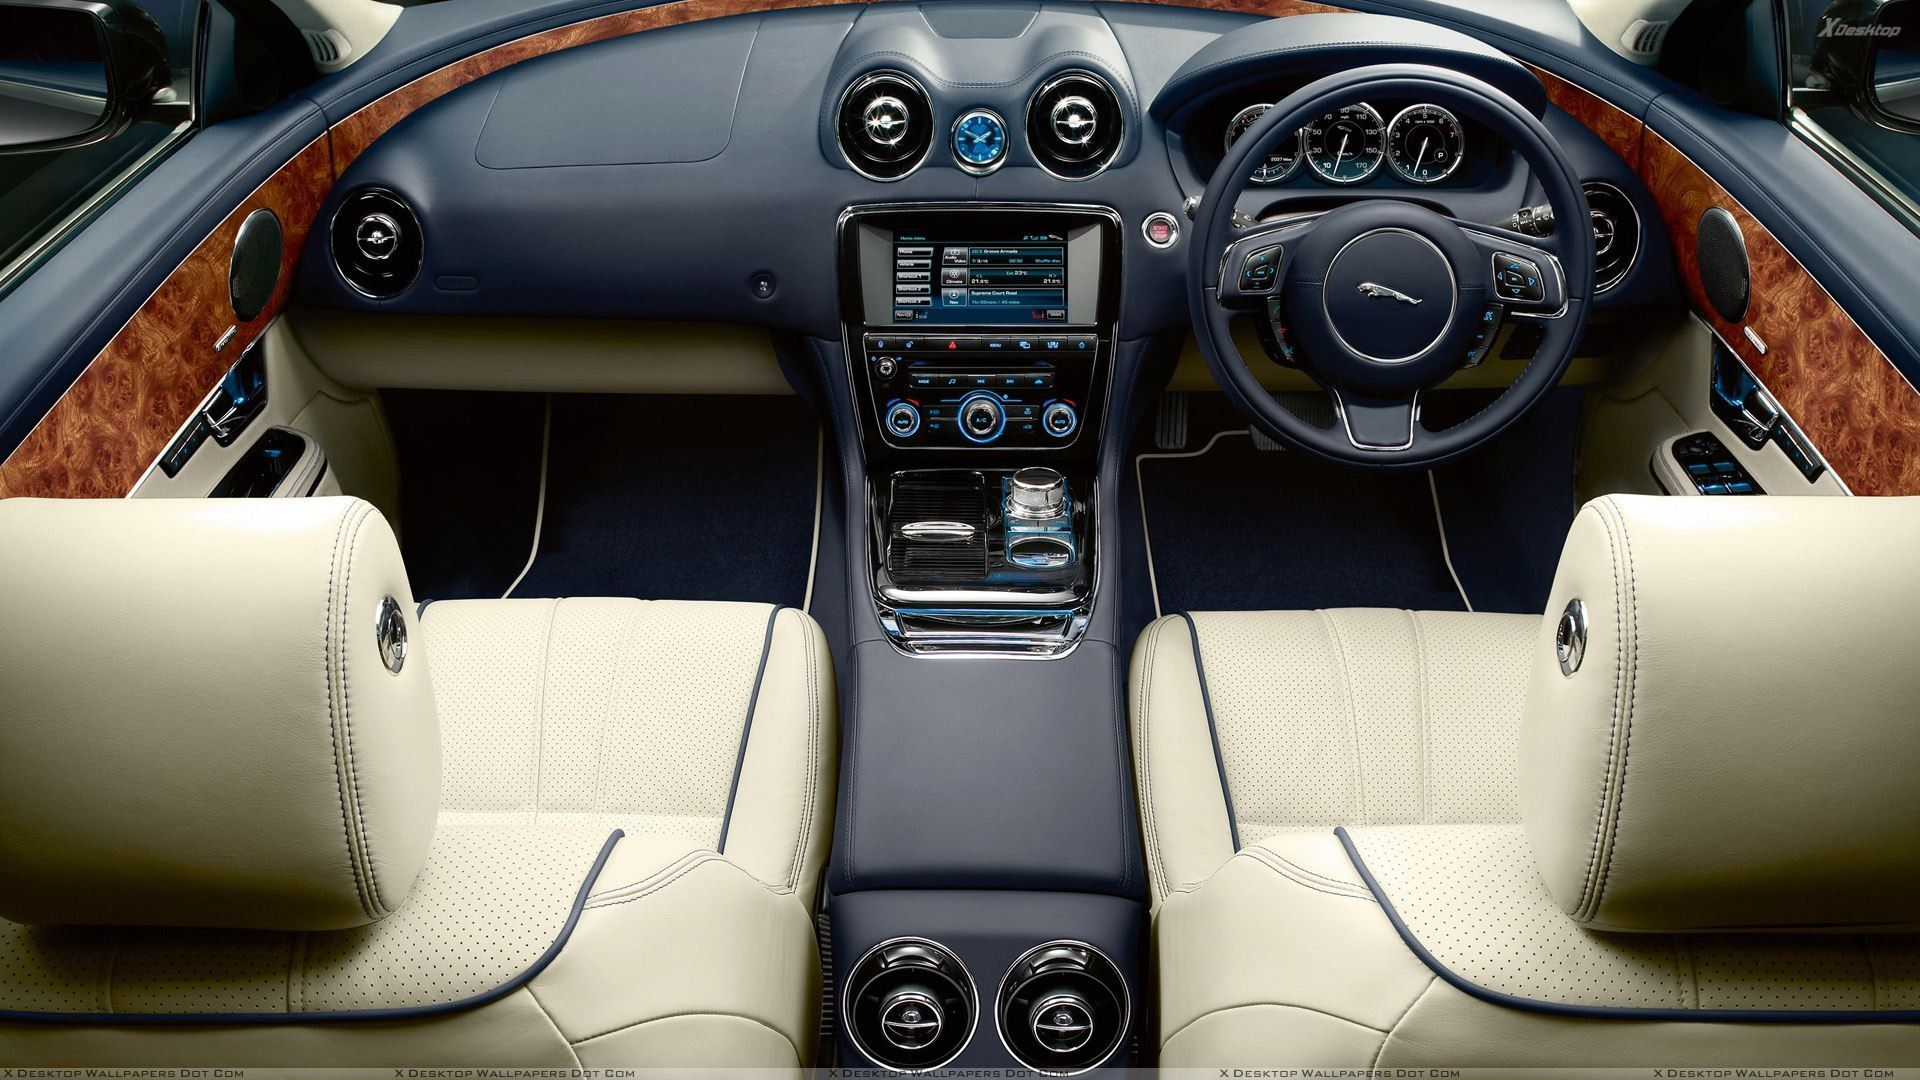 Startech, which is a subsidiary of brabus, does some of the most unique, interesting and yet still tasteful. Jaguar Xj Interior 1920x1080 Wallpaper Jaguar Car Jaguar Xj Jaguar